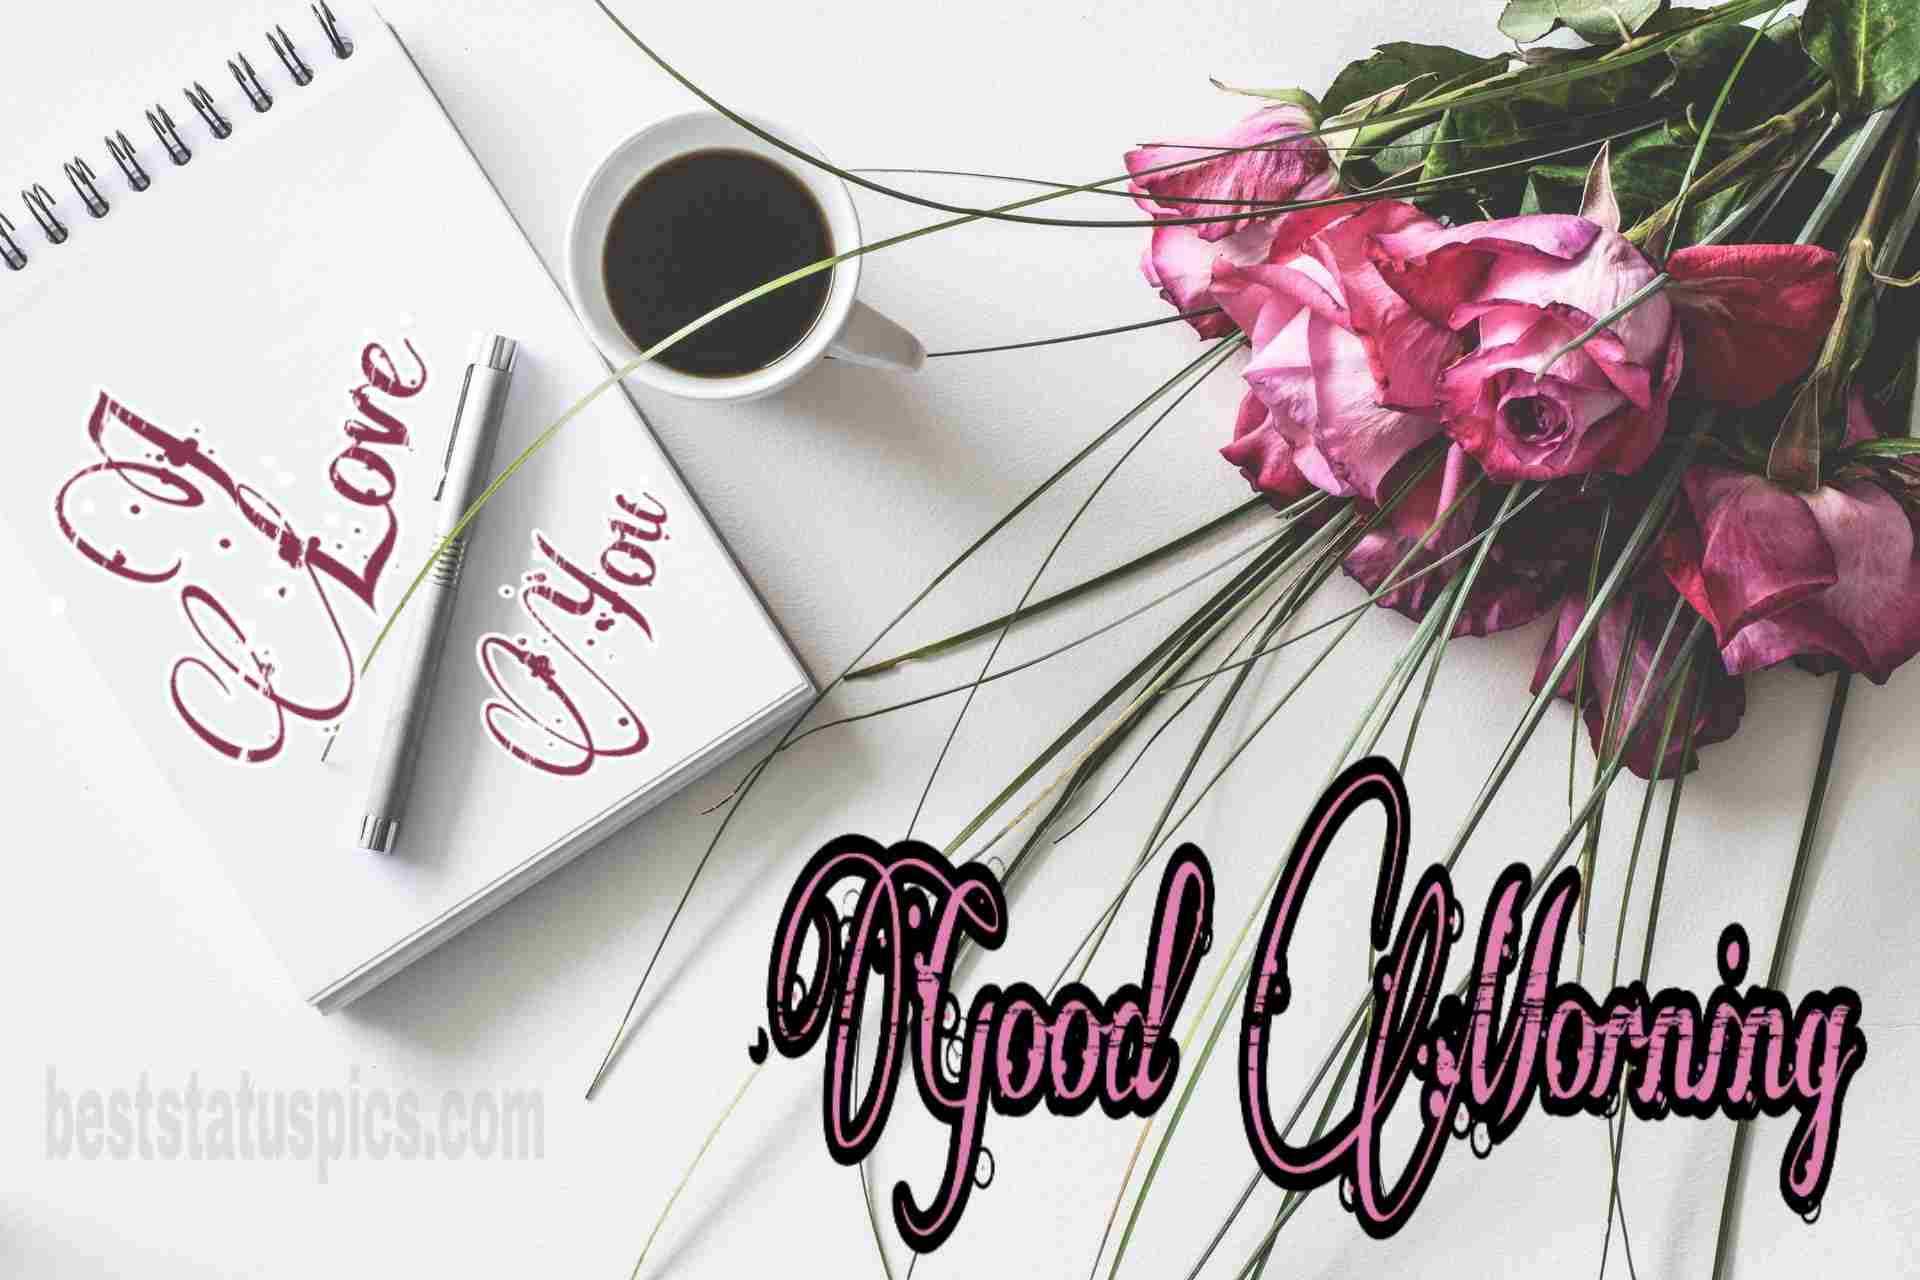 Good morning wishes with I love you quote, coffee and rose image